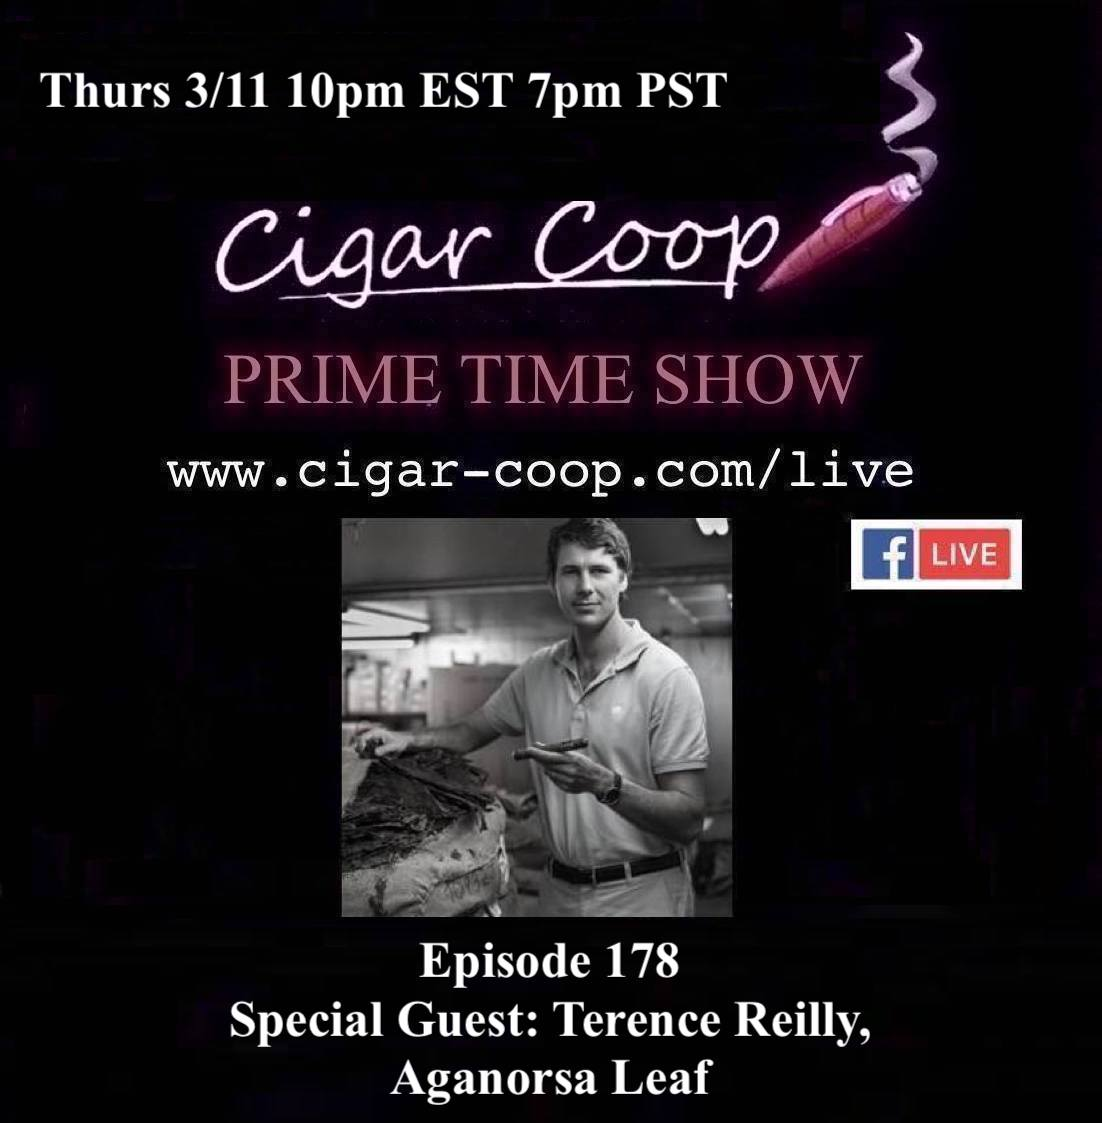 Announcement: Prime Time Episode 178 – Terence Reilly, Aganorsa Leaf